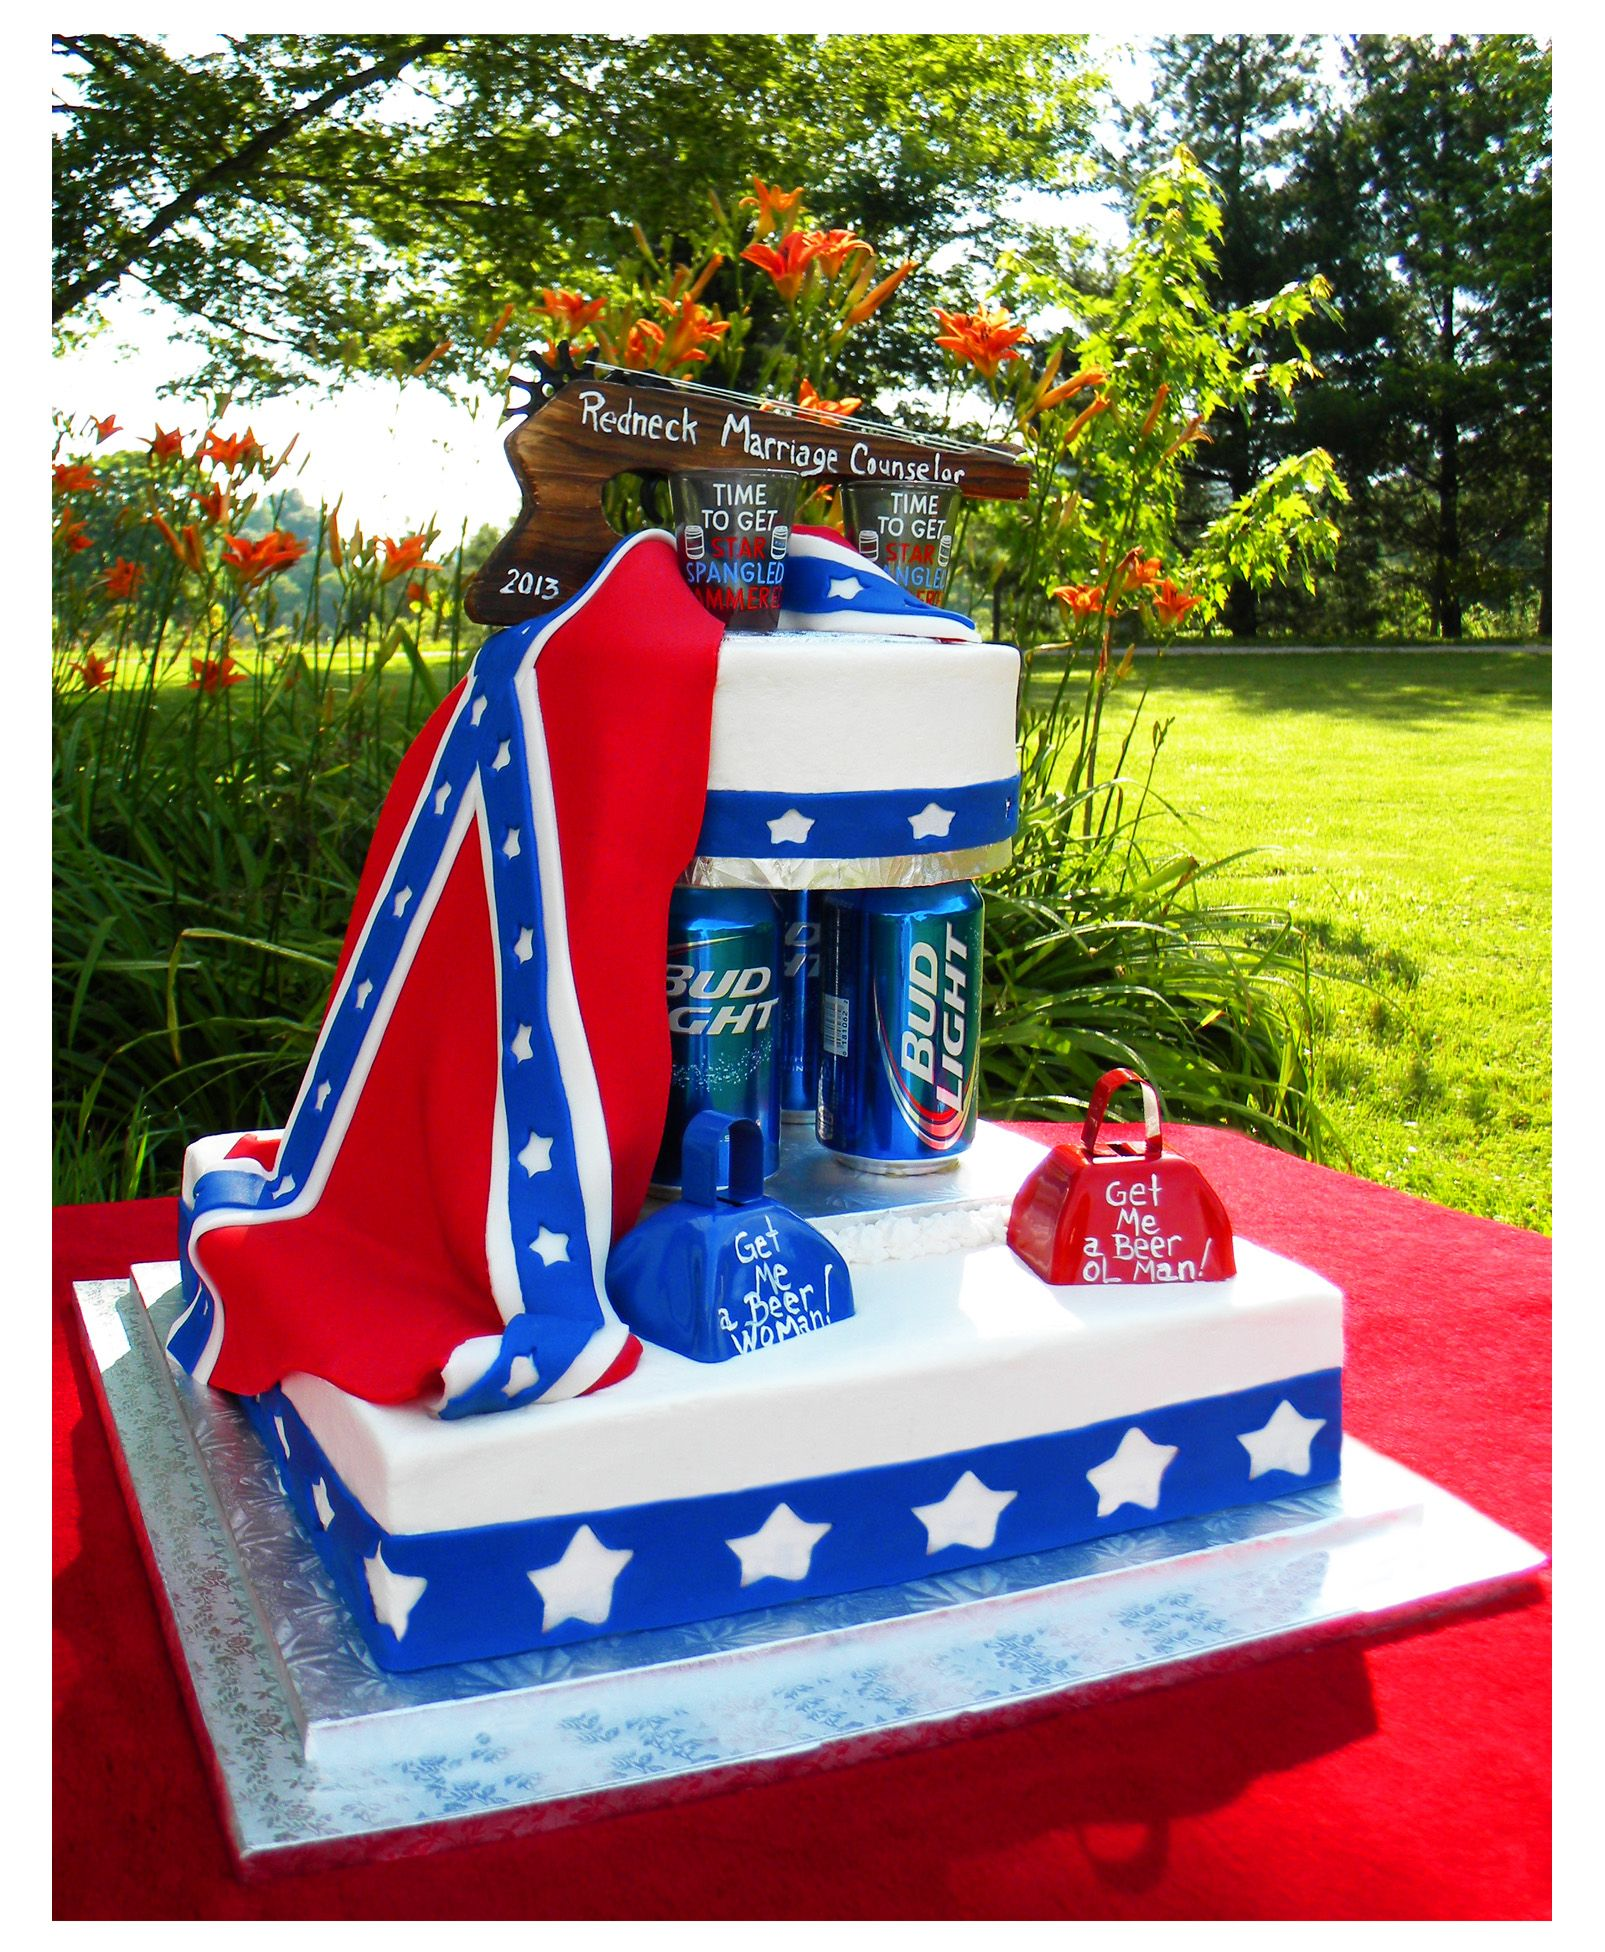 Redneck Wedding Cake Minus The Bud Light And Add Copies